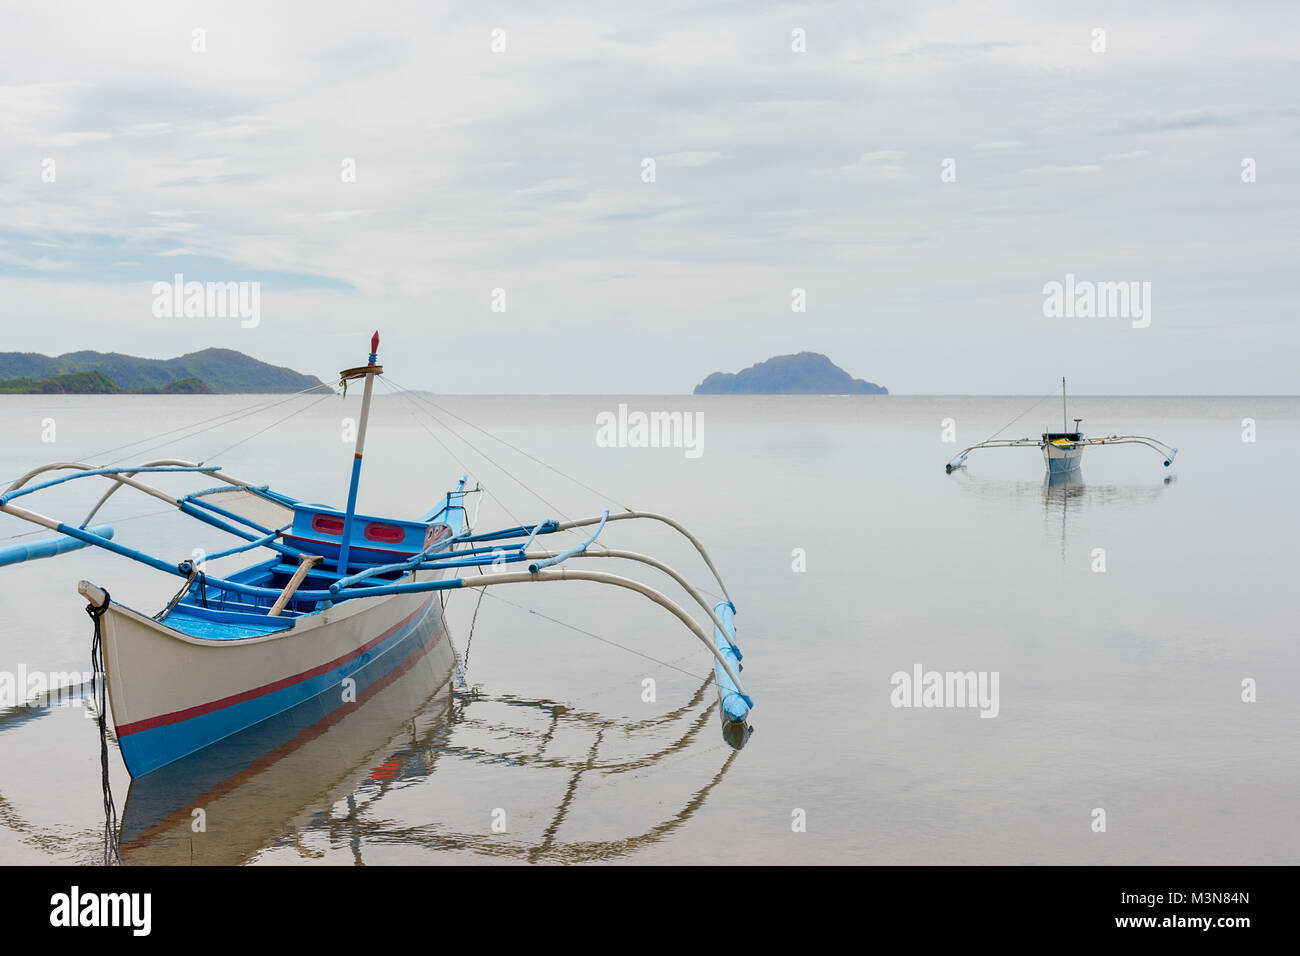 Filipino fisherman boats with traditional  outriggers float anchored in a still calm sea of Coron Bay, Palawan, - Stock Image